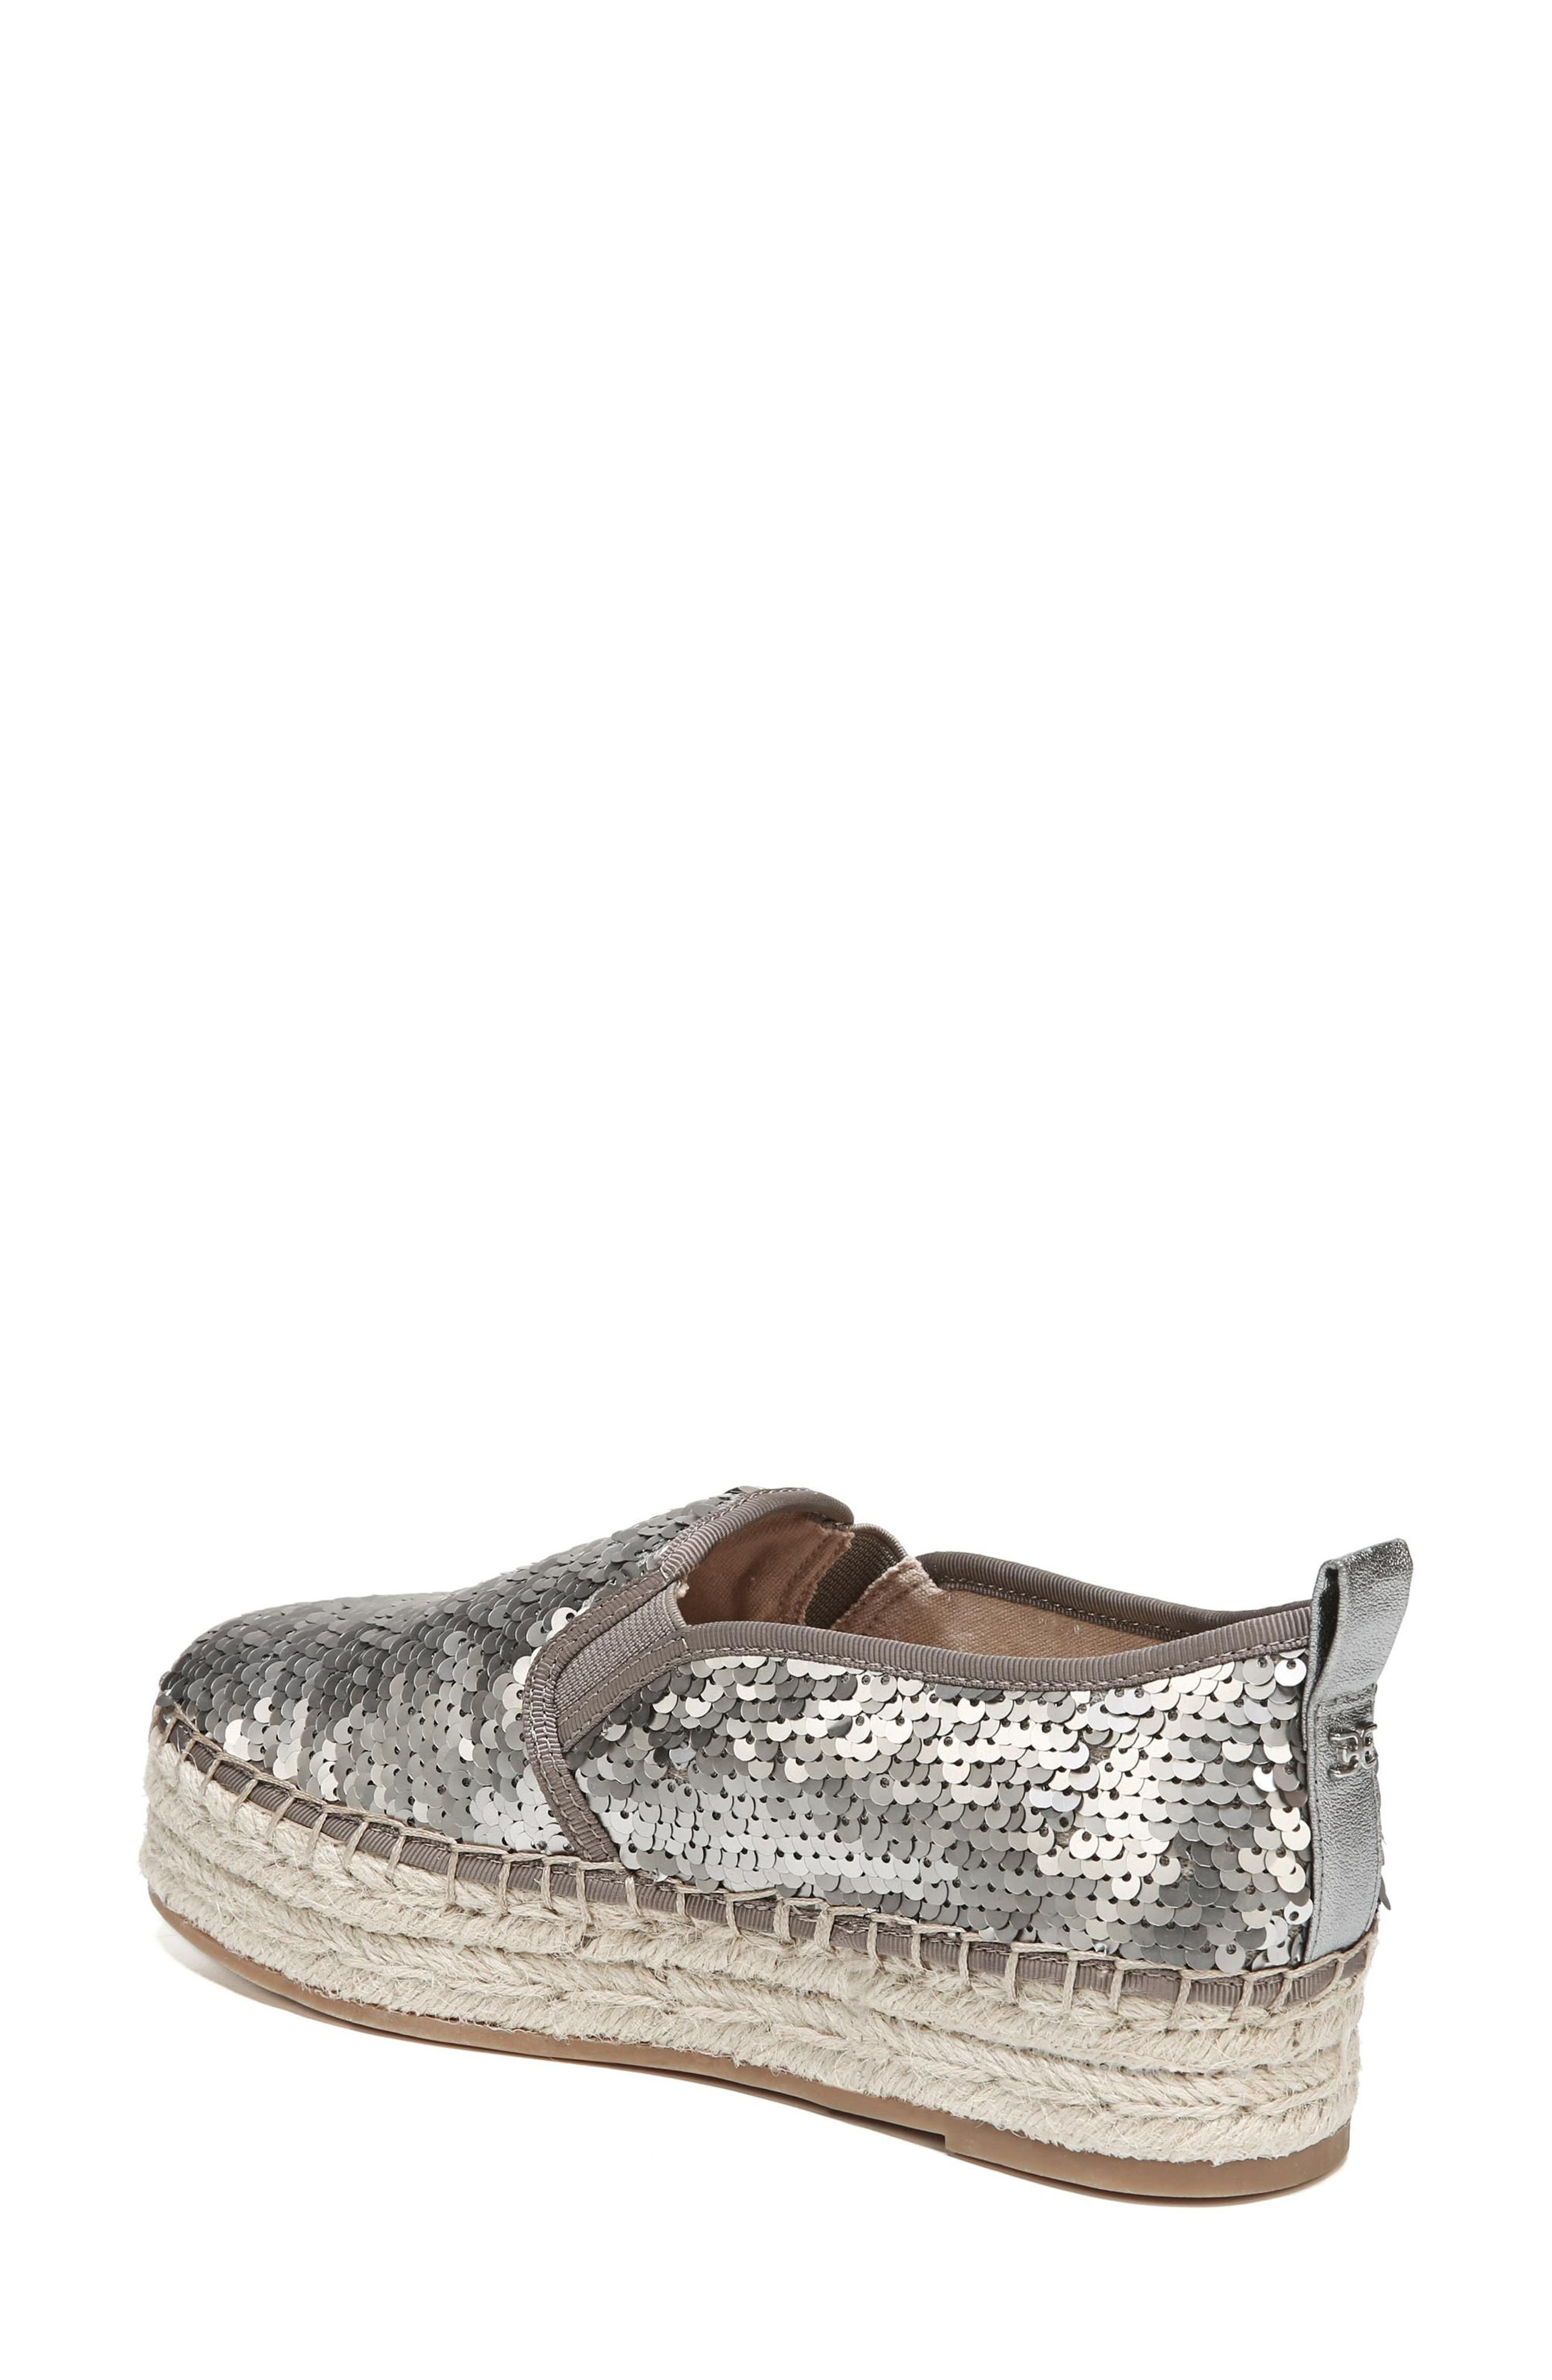 'Carrin' Espadrille Flat,                             Alternate thumbnail 2, color,                             PEWTER SEQUINS